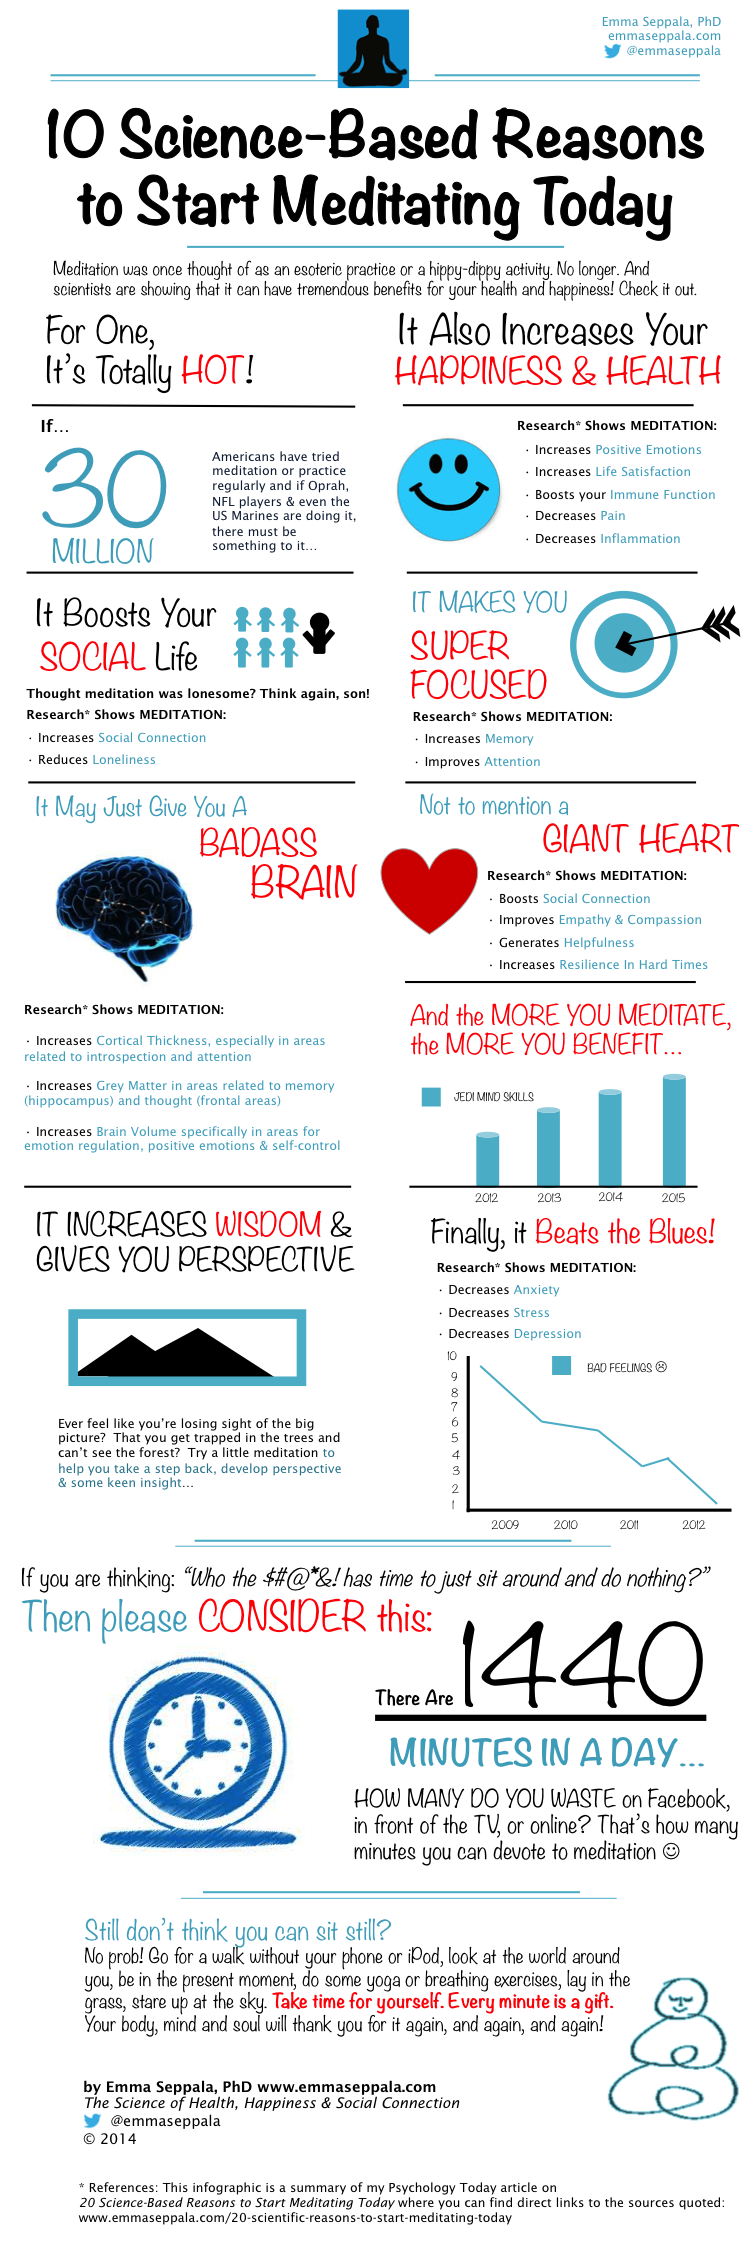 10-Science-Based-Reasons-To-Start-Meditating-Today-INFOGRAPHIC.png